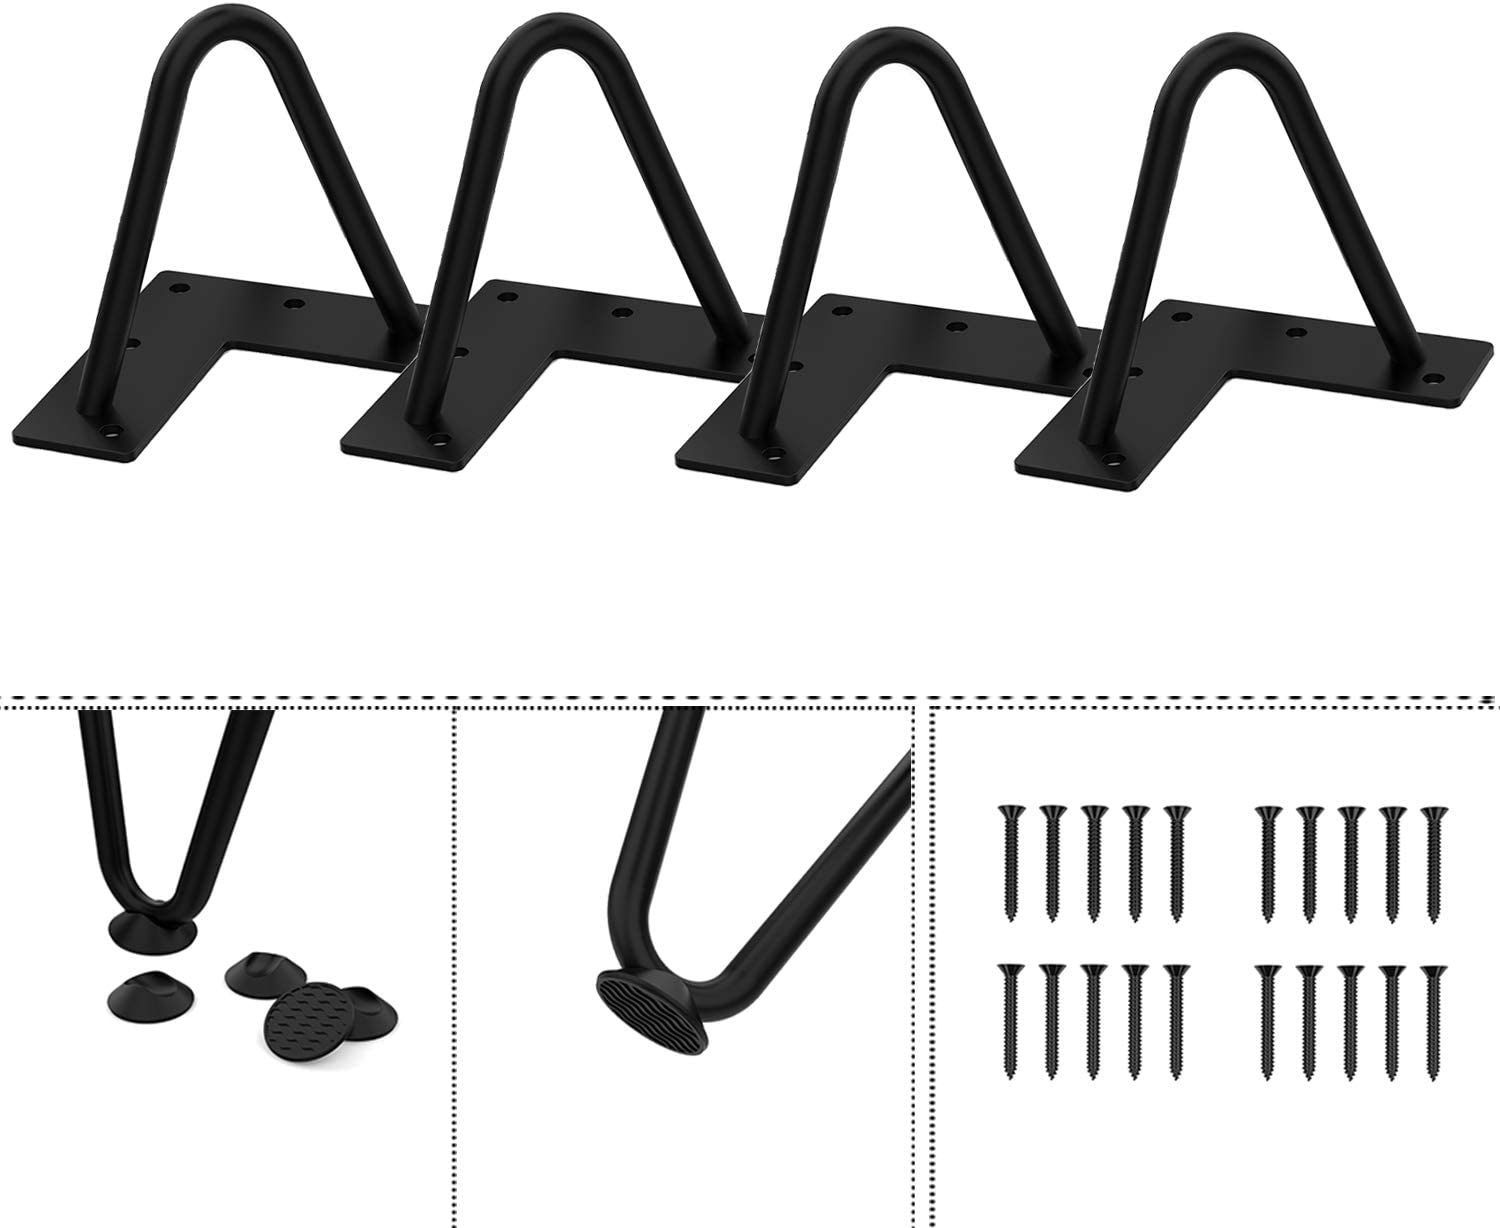 Agoland 4 Inch Black Hairpin Legs Special price Metal Heavy-Duty gift 4pcs Furni